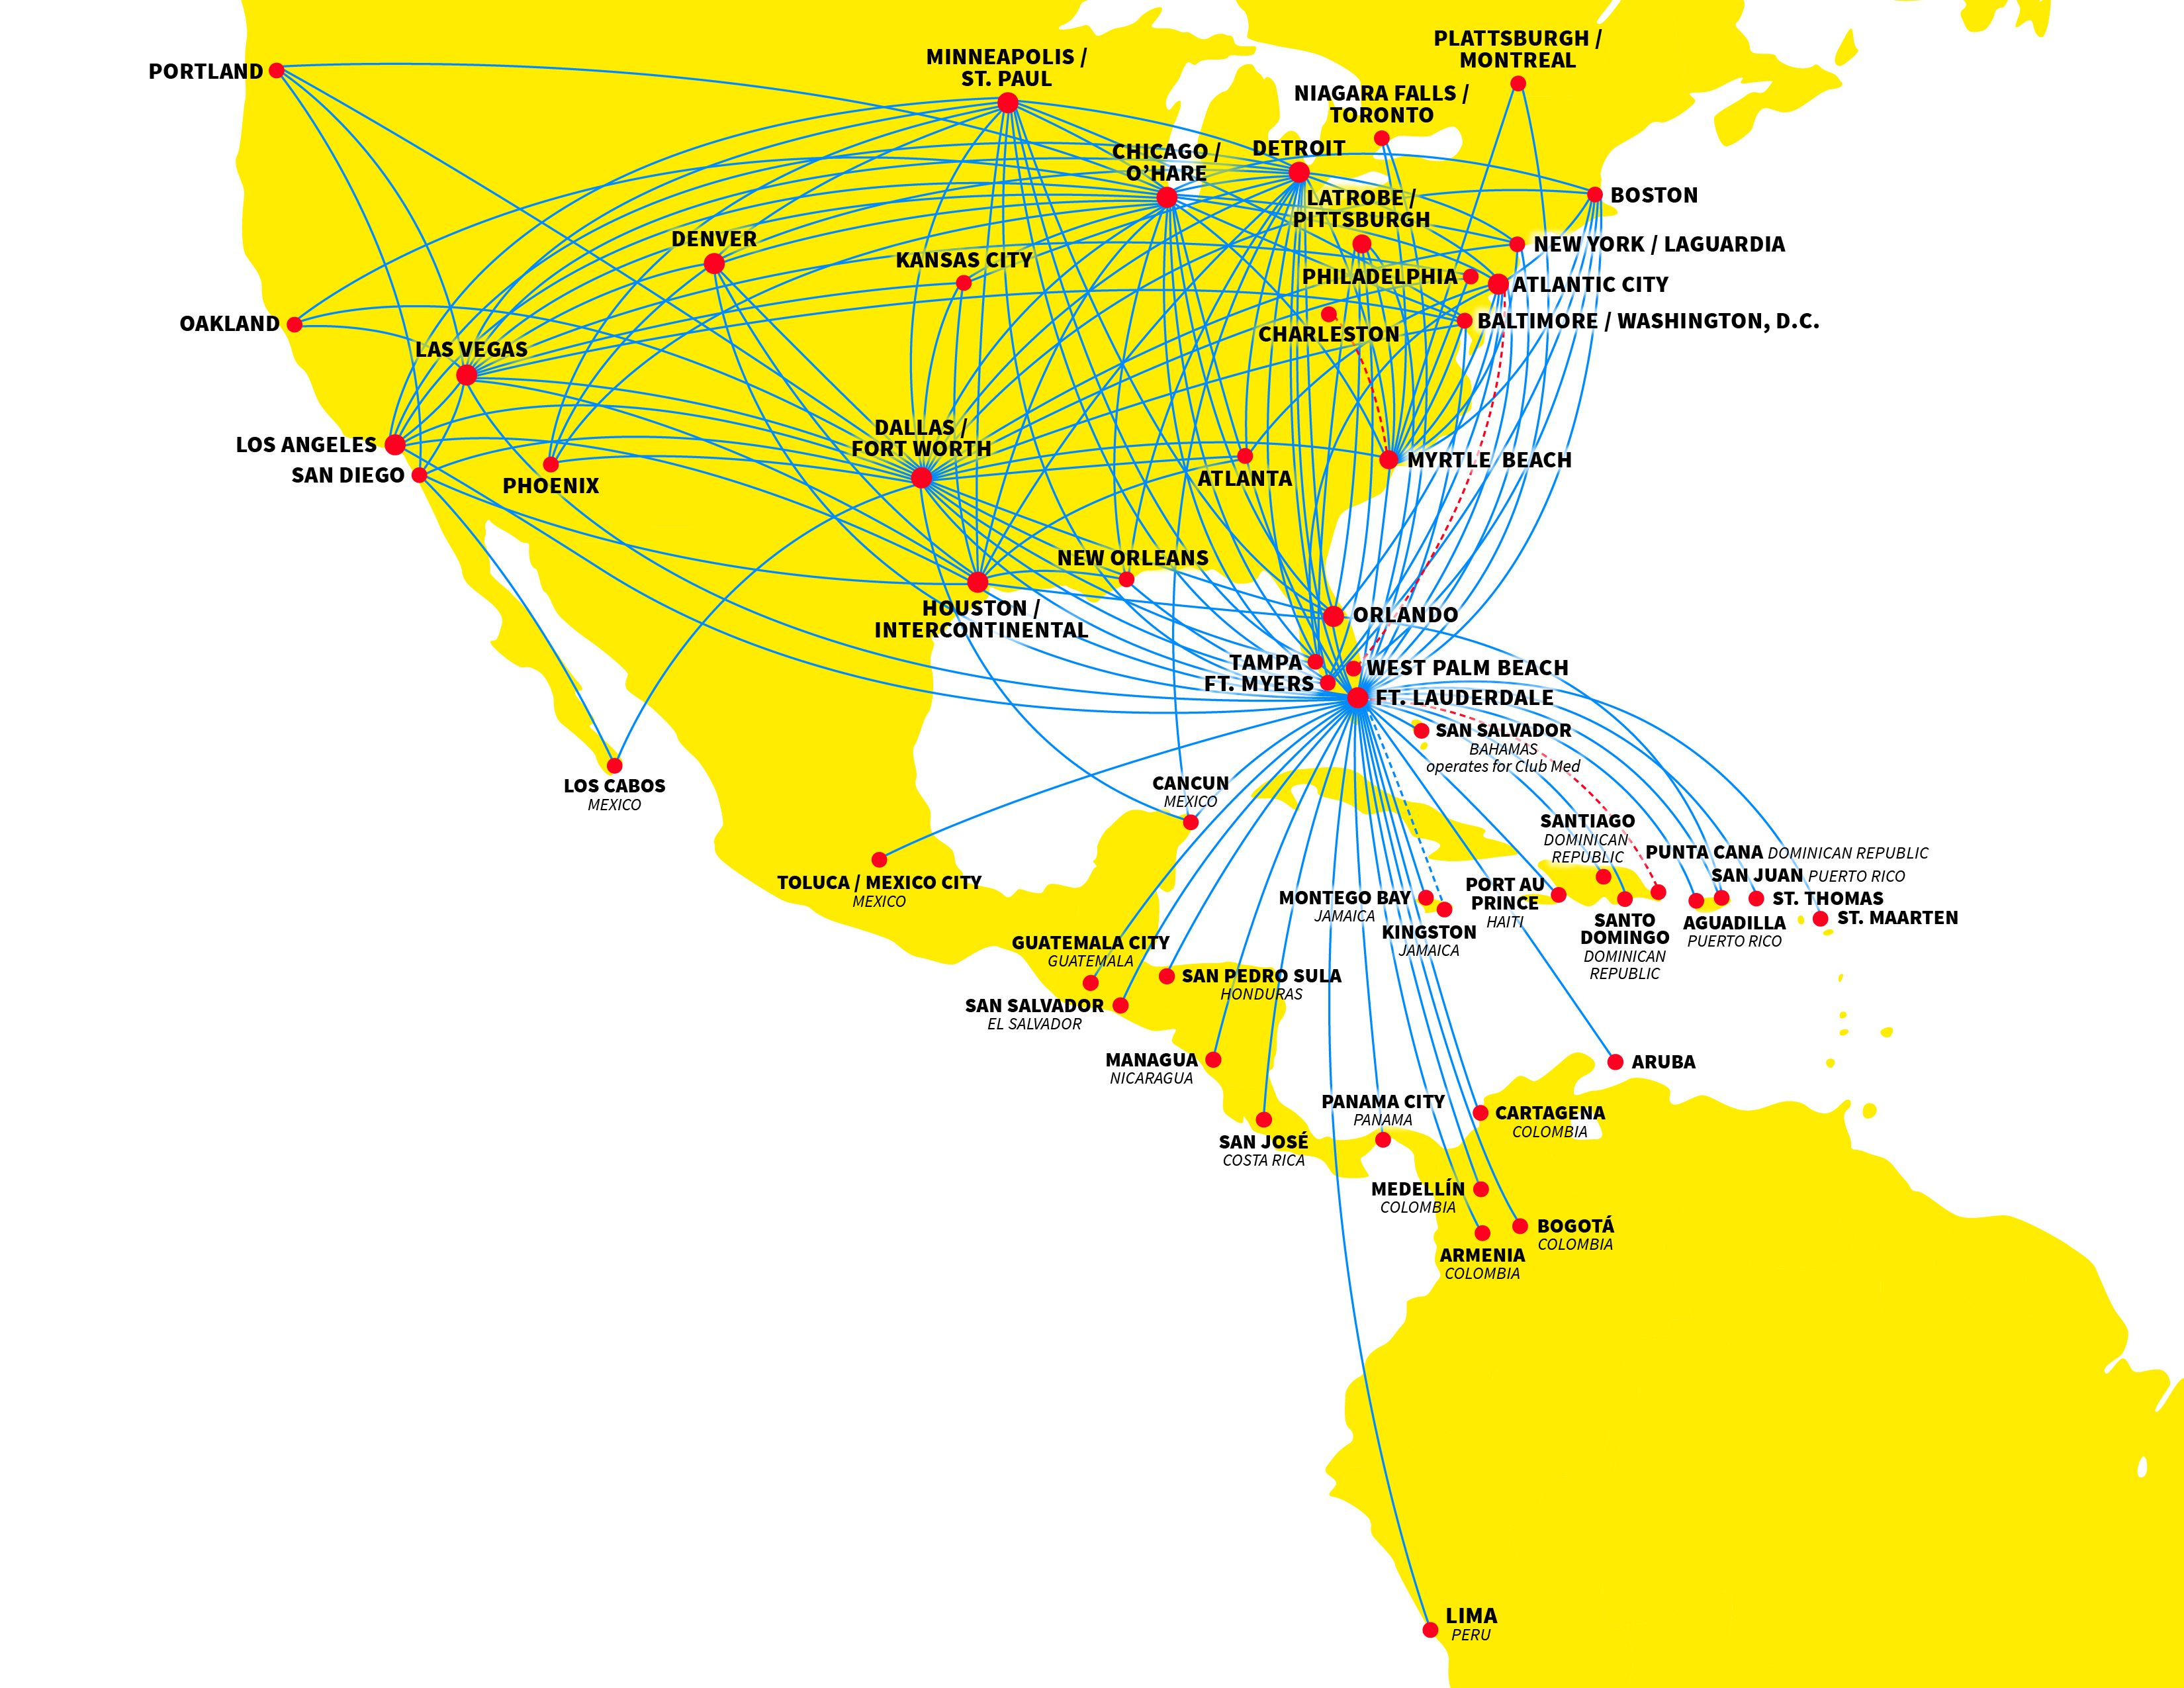 Spirit Airlines Route Map | Spirit airlines, Map, Route map